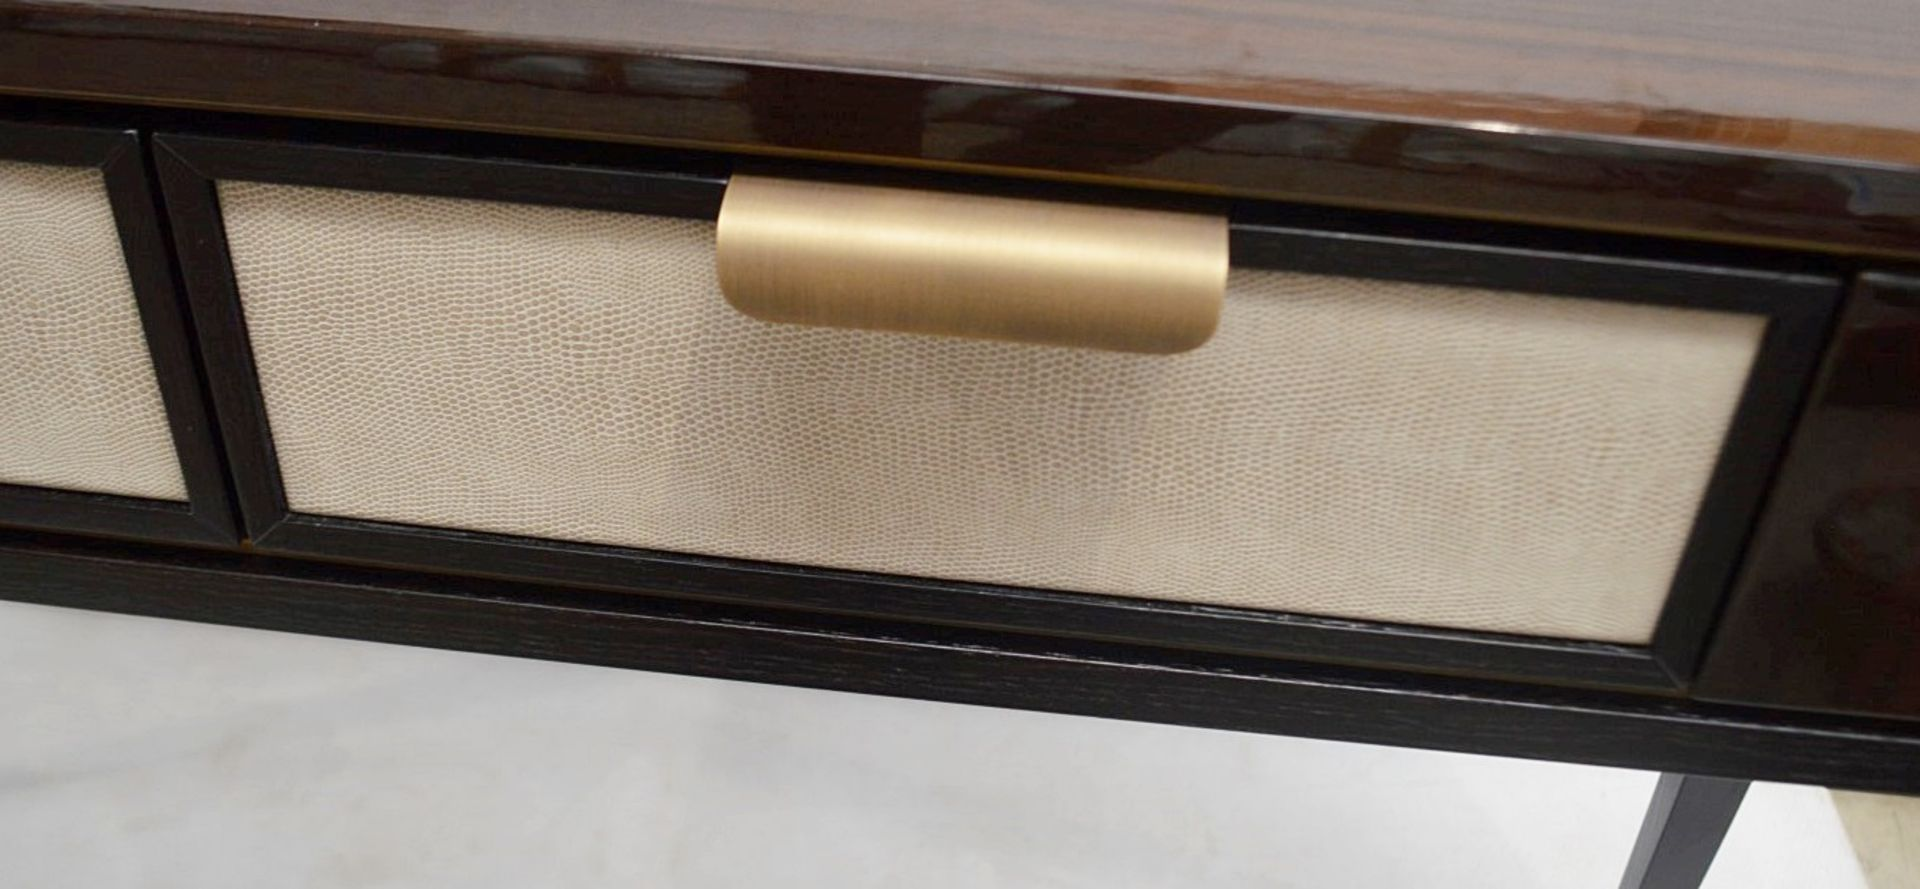 1 x FRATO 'Mandalay' Luxury Designer 2-Drawer Dresser Dressing Table In A Gloss Finish - RRP £4,300 - Image 16 of 17